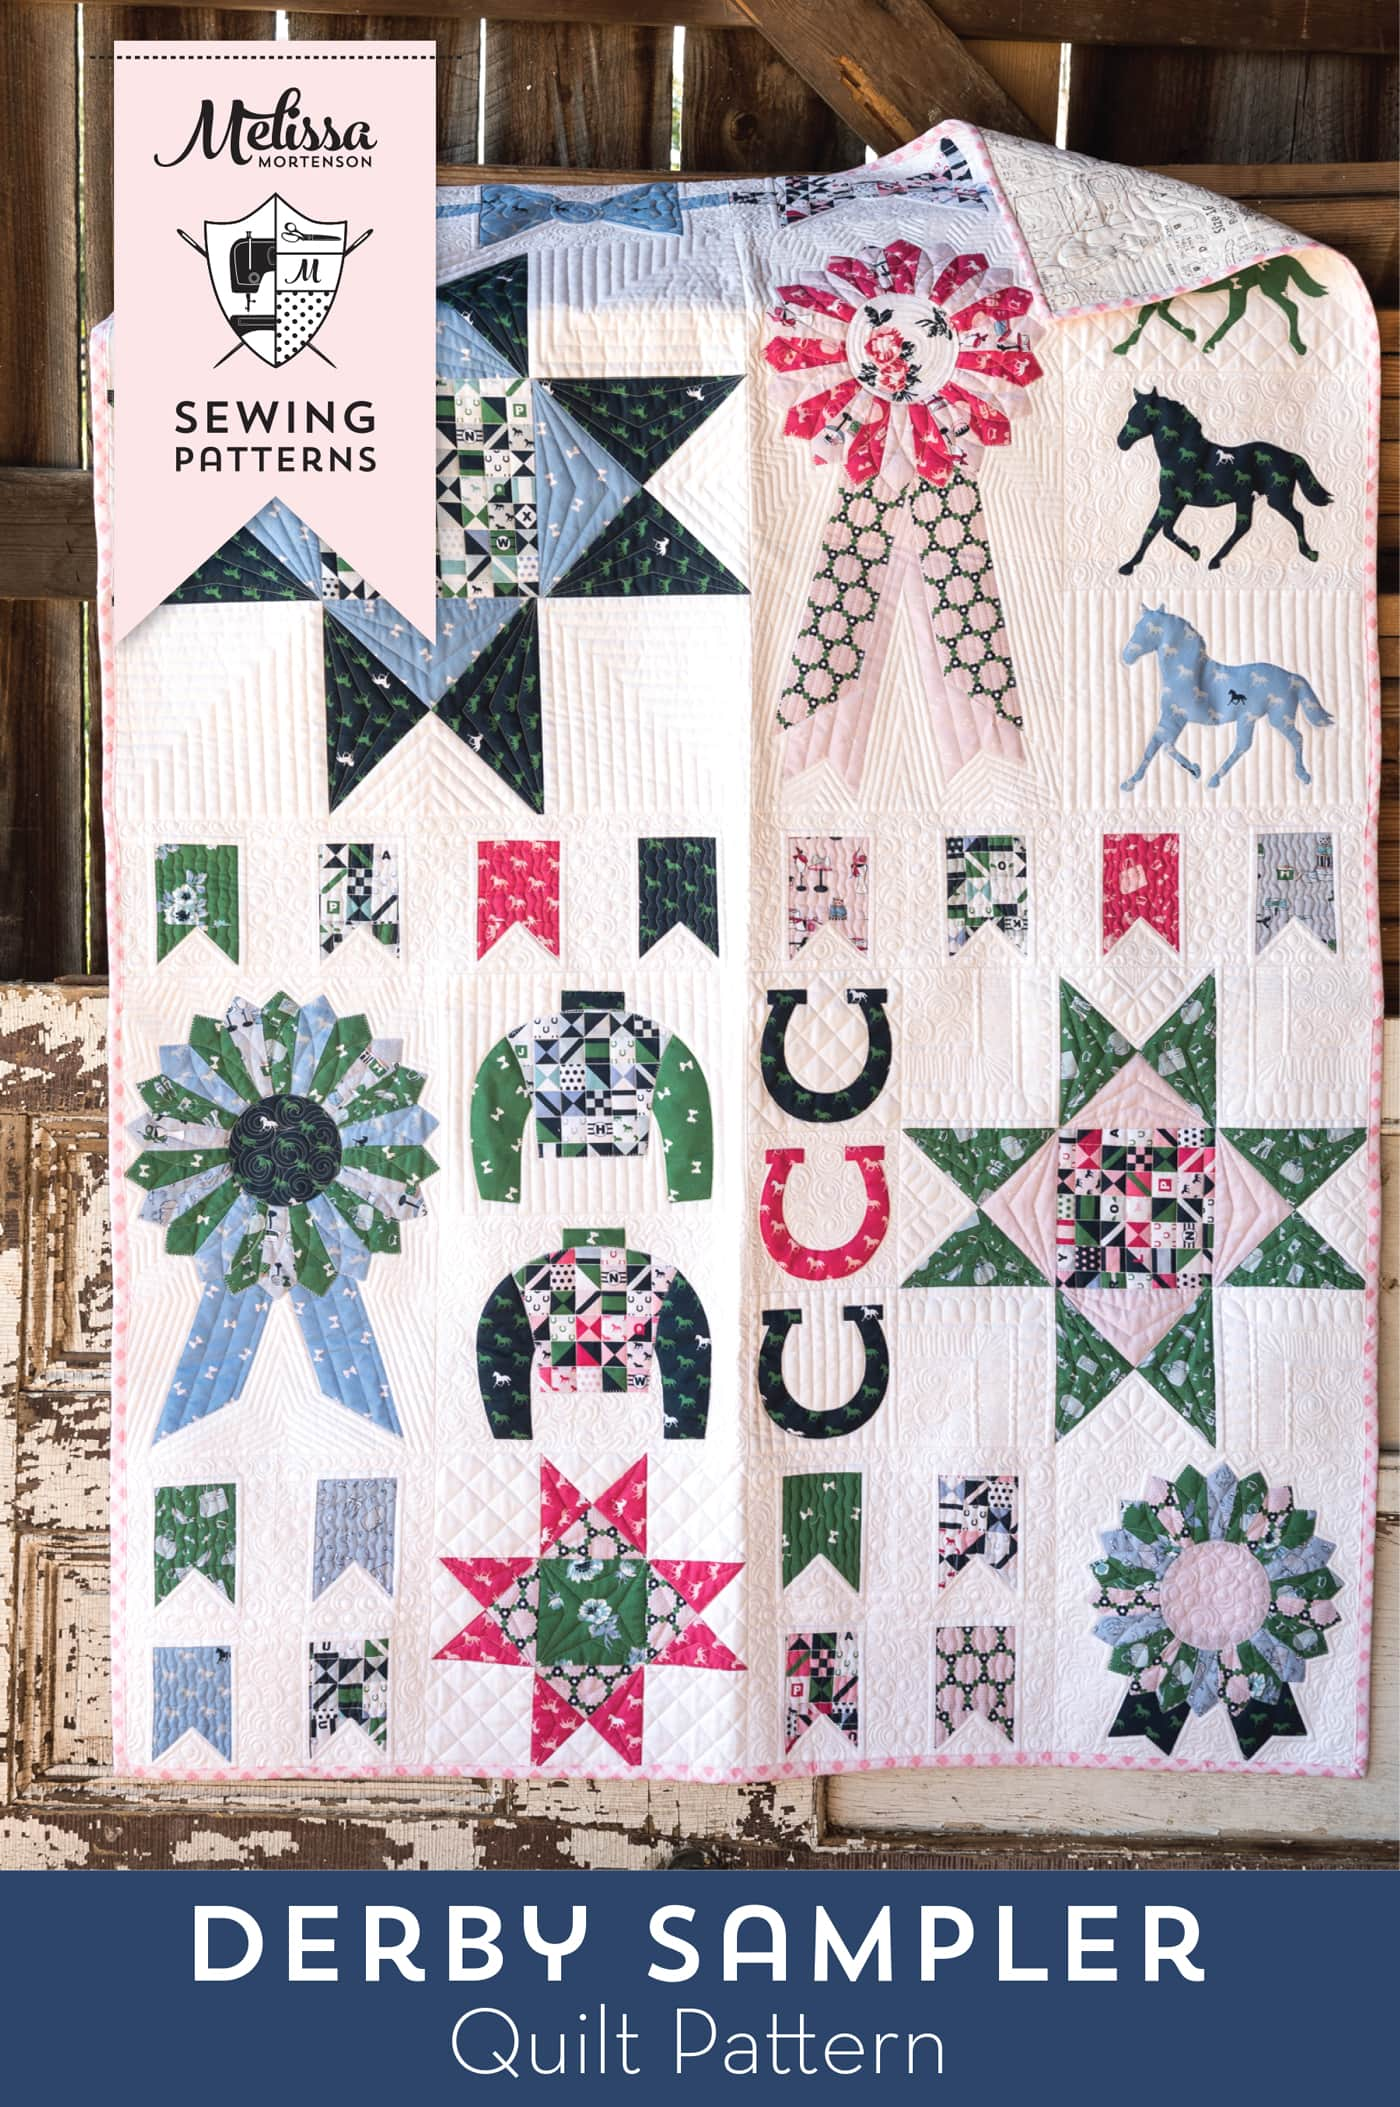 The Derby Sampler Quilt by Melissa Mortenson of polkadotchair.com - a quilt block sampler quilt perfect for Derby. A great quilt for equestrian and horse lovers!